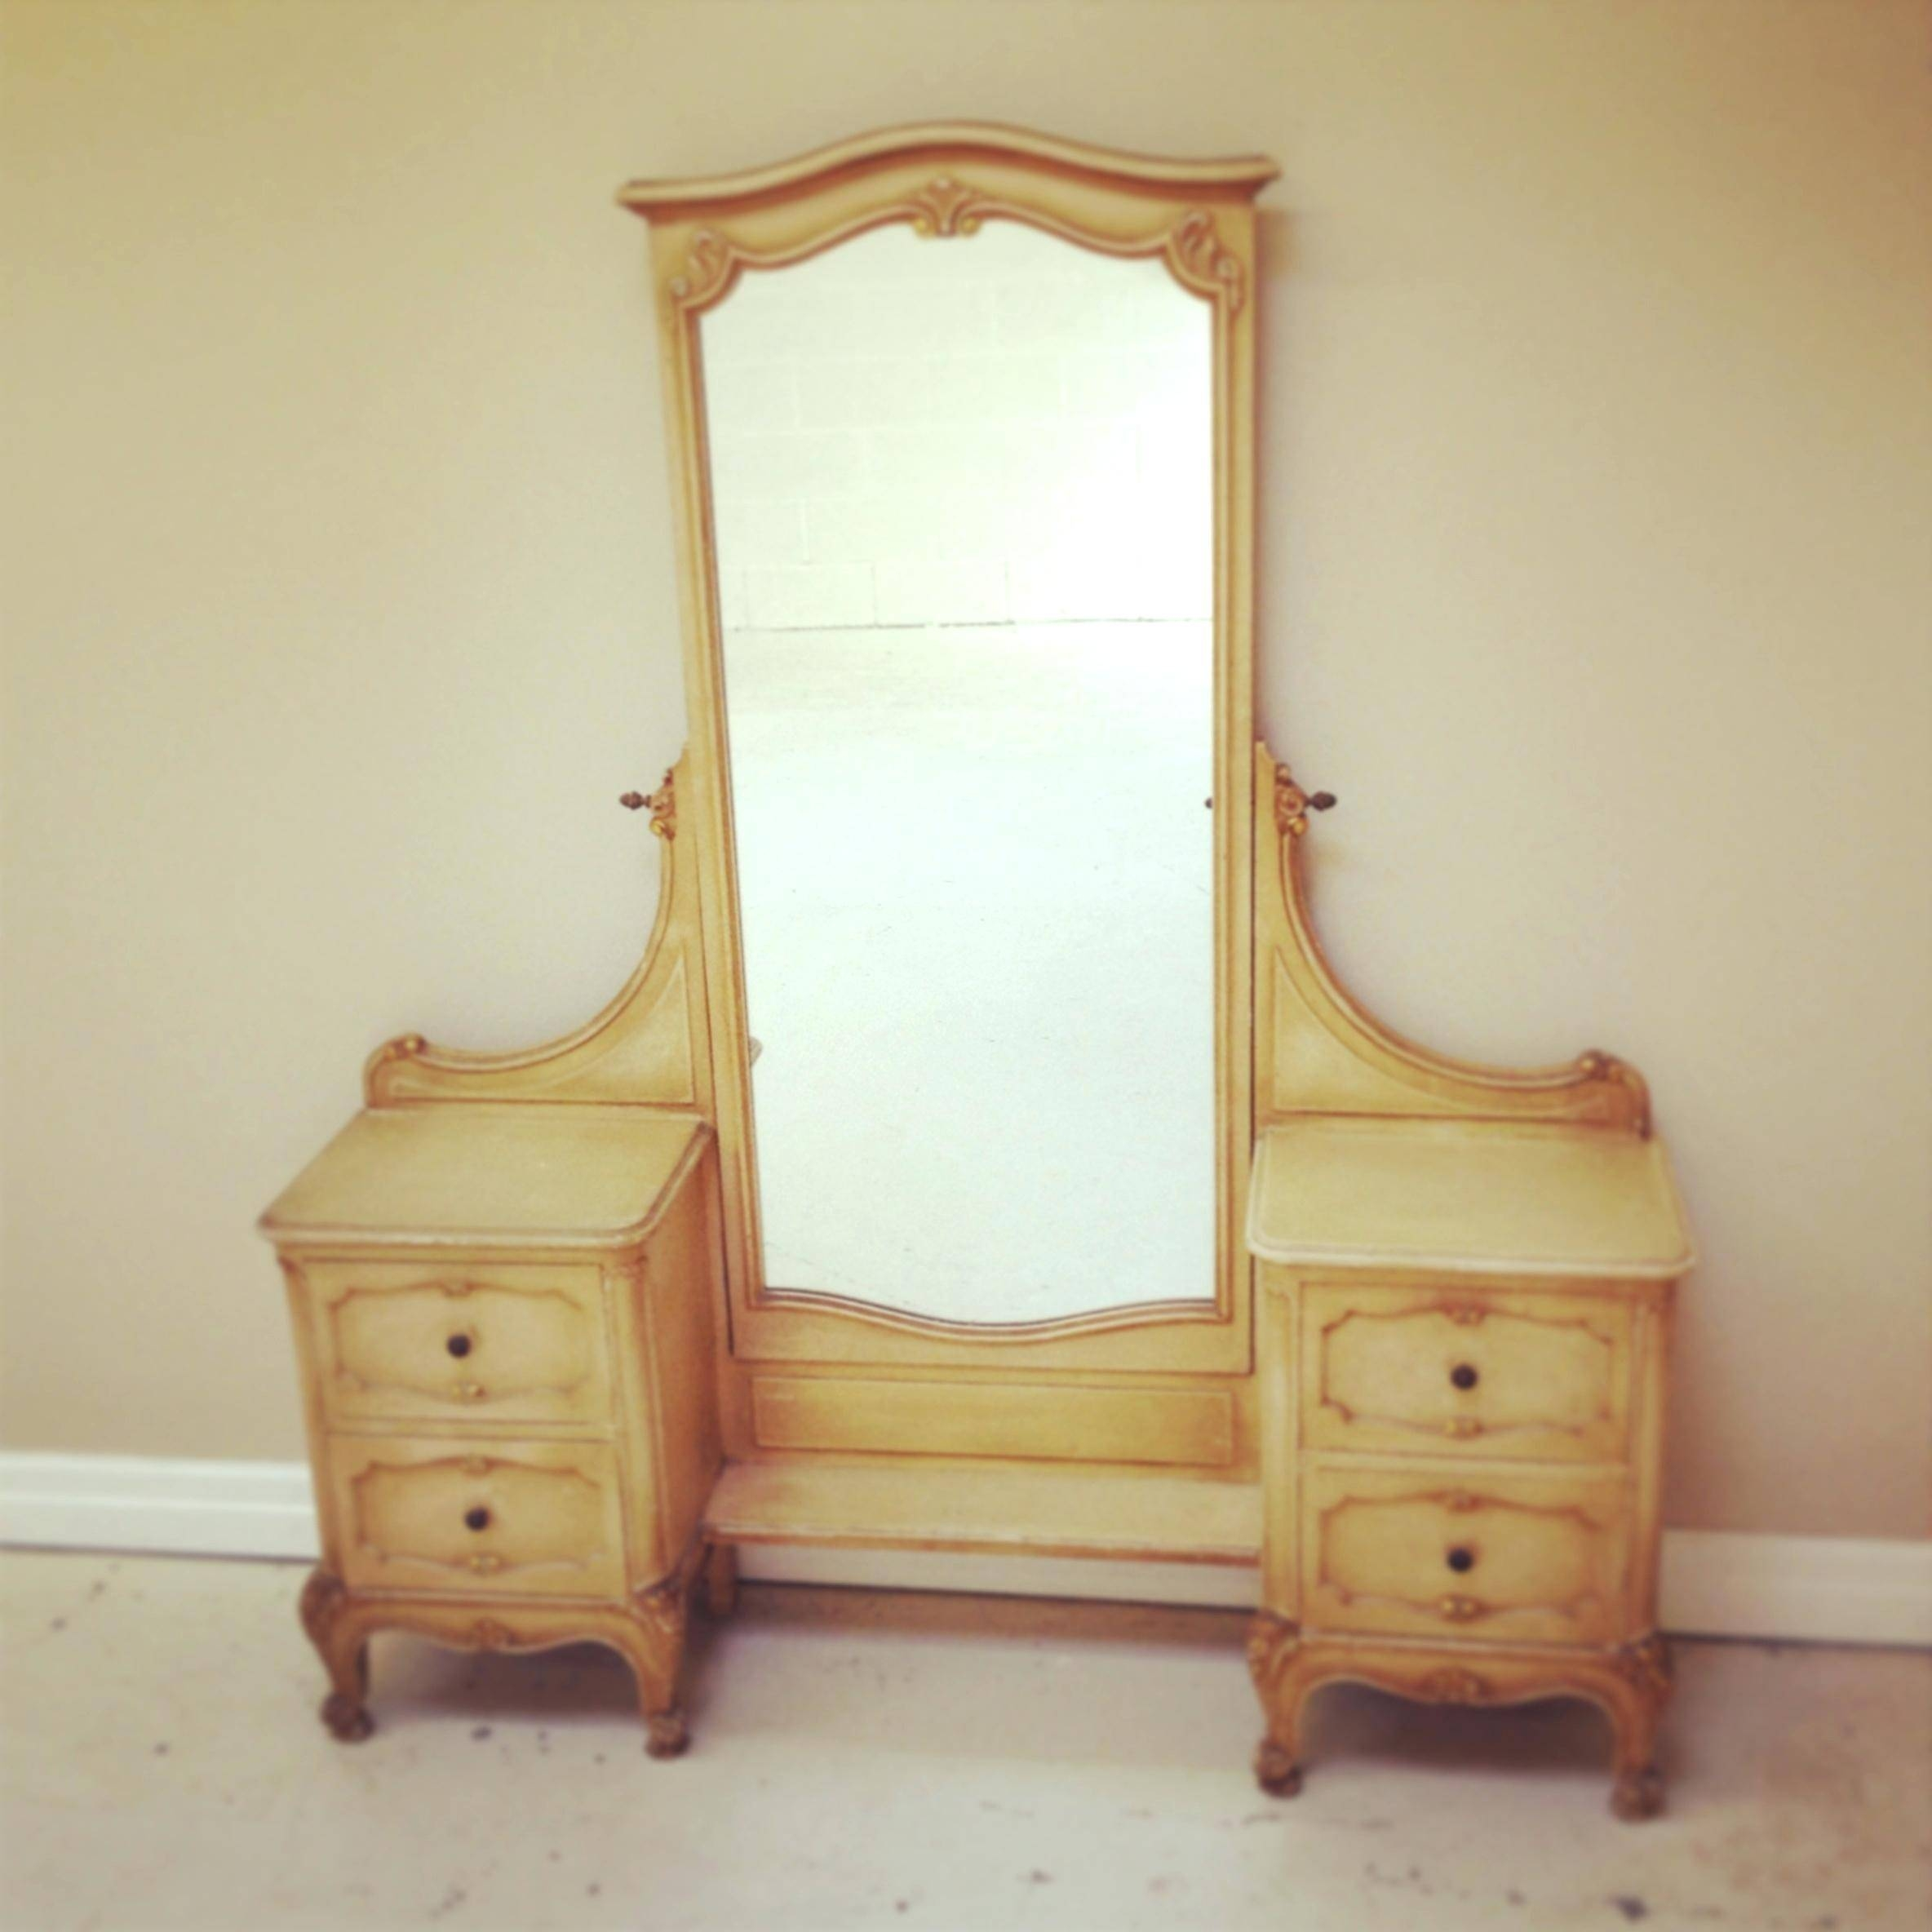 Vintage French Dressing Table Long Mirrorlarge Mirror On Stand regarding Full Length Vintage Mirrors (Image 22 of 25)